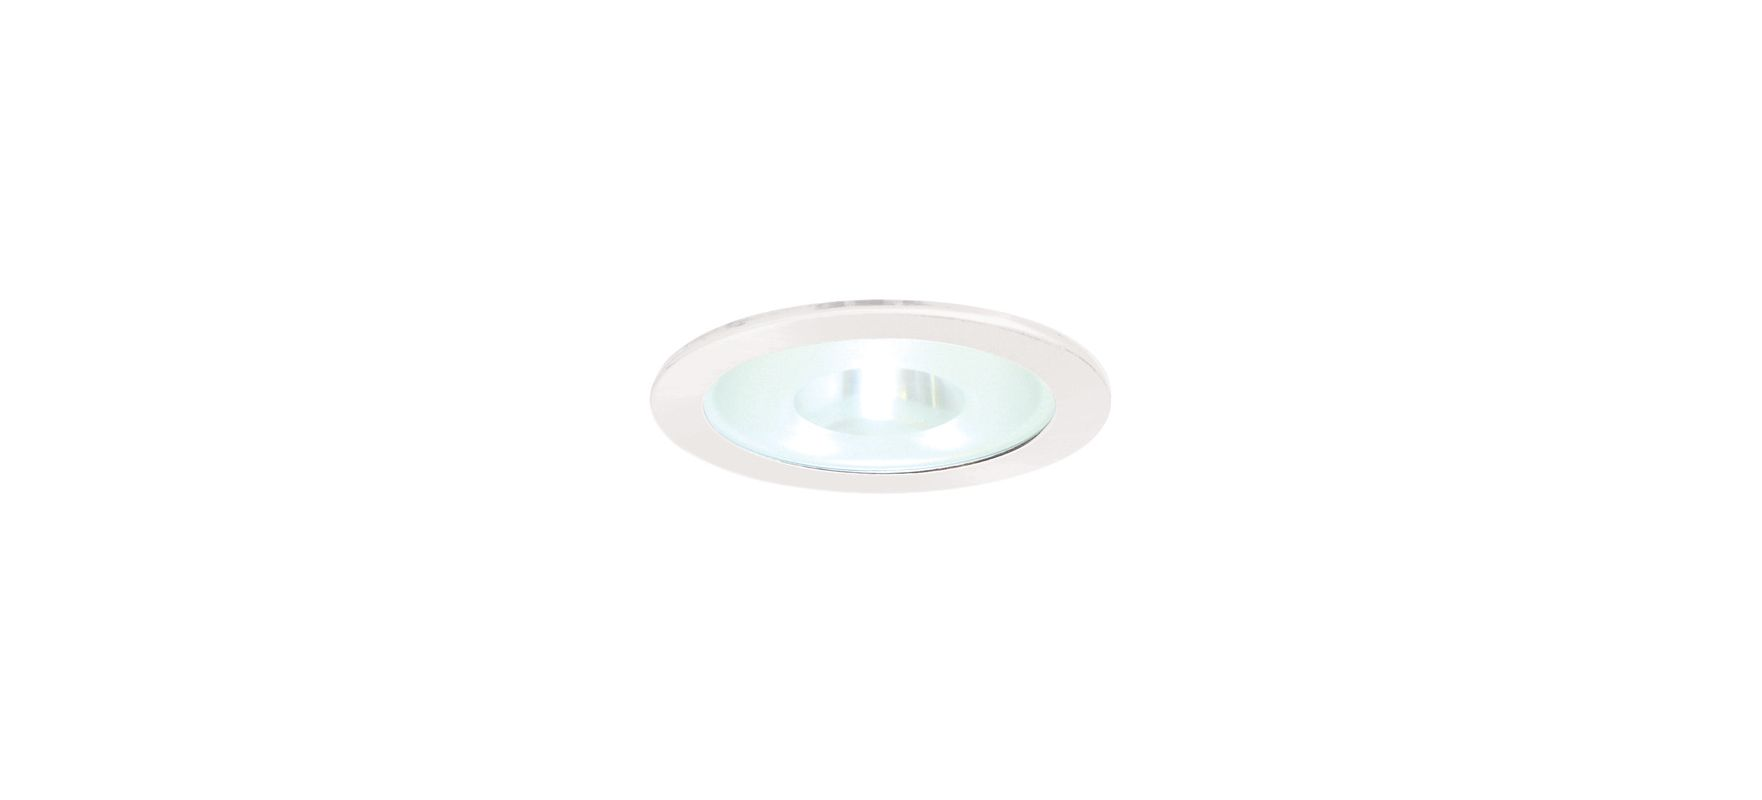 "Elco EL24 6"" Shower Trim with Frosted Pinhole Glass Lens White"